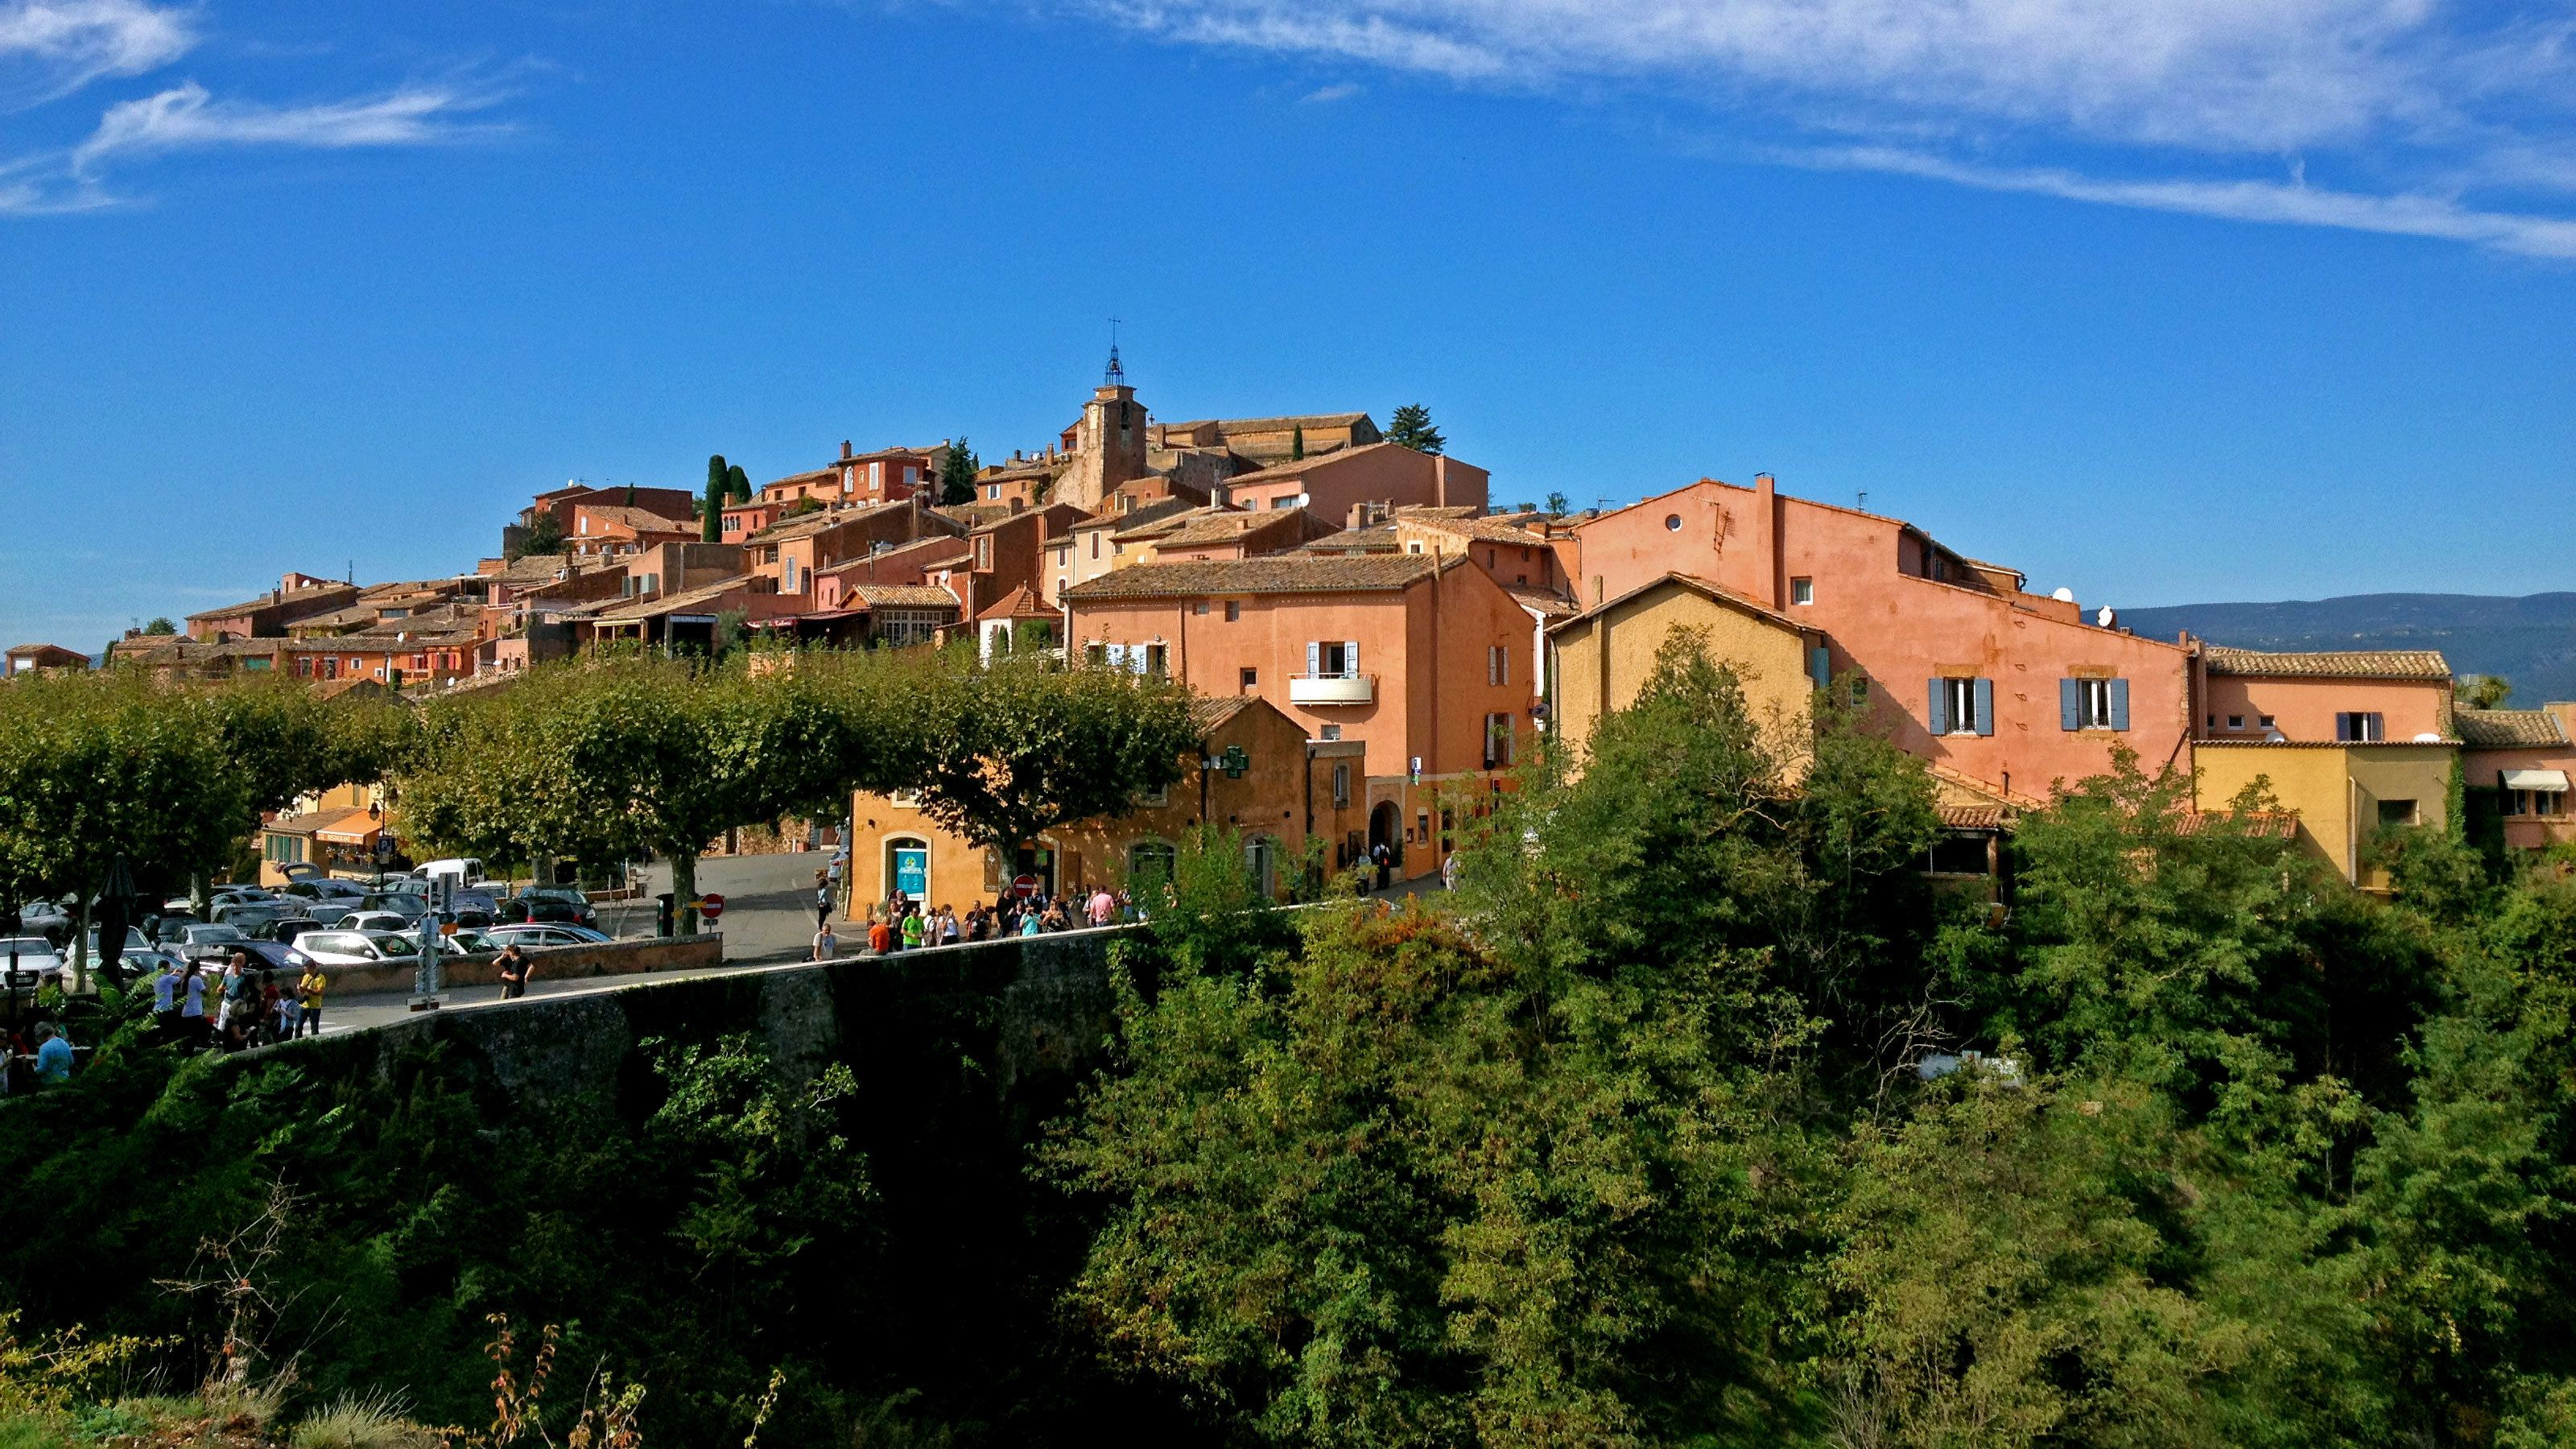 The city of Roussillon